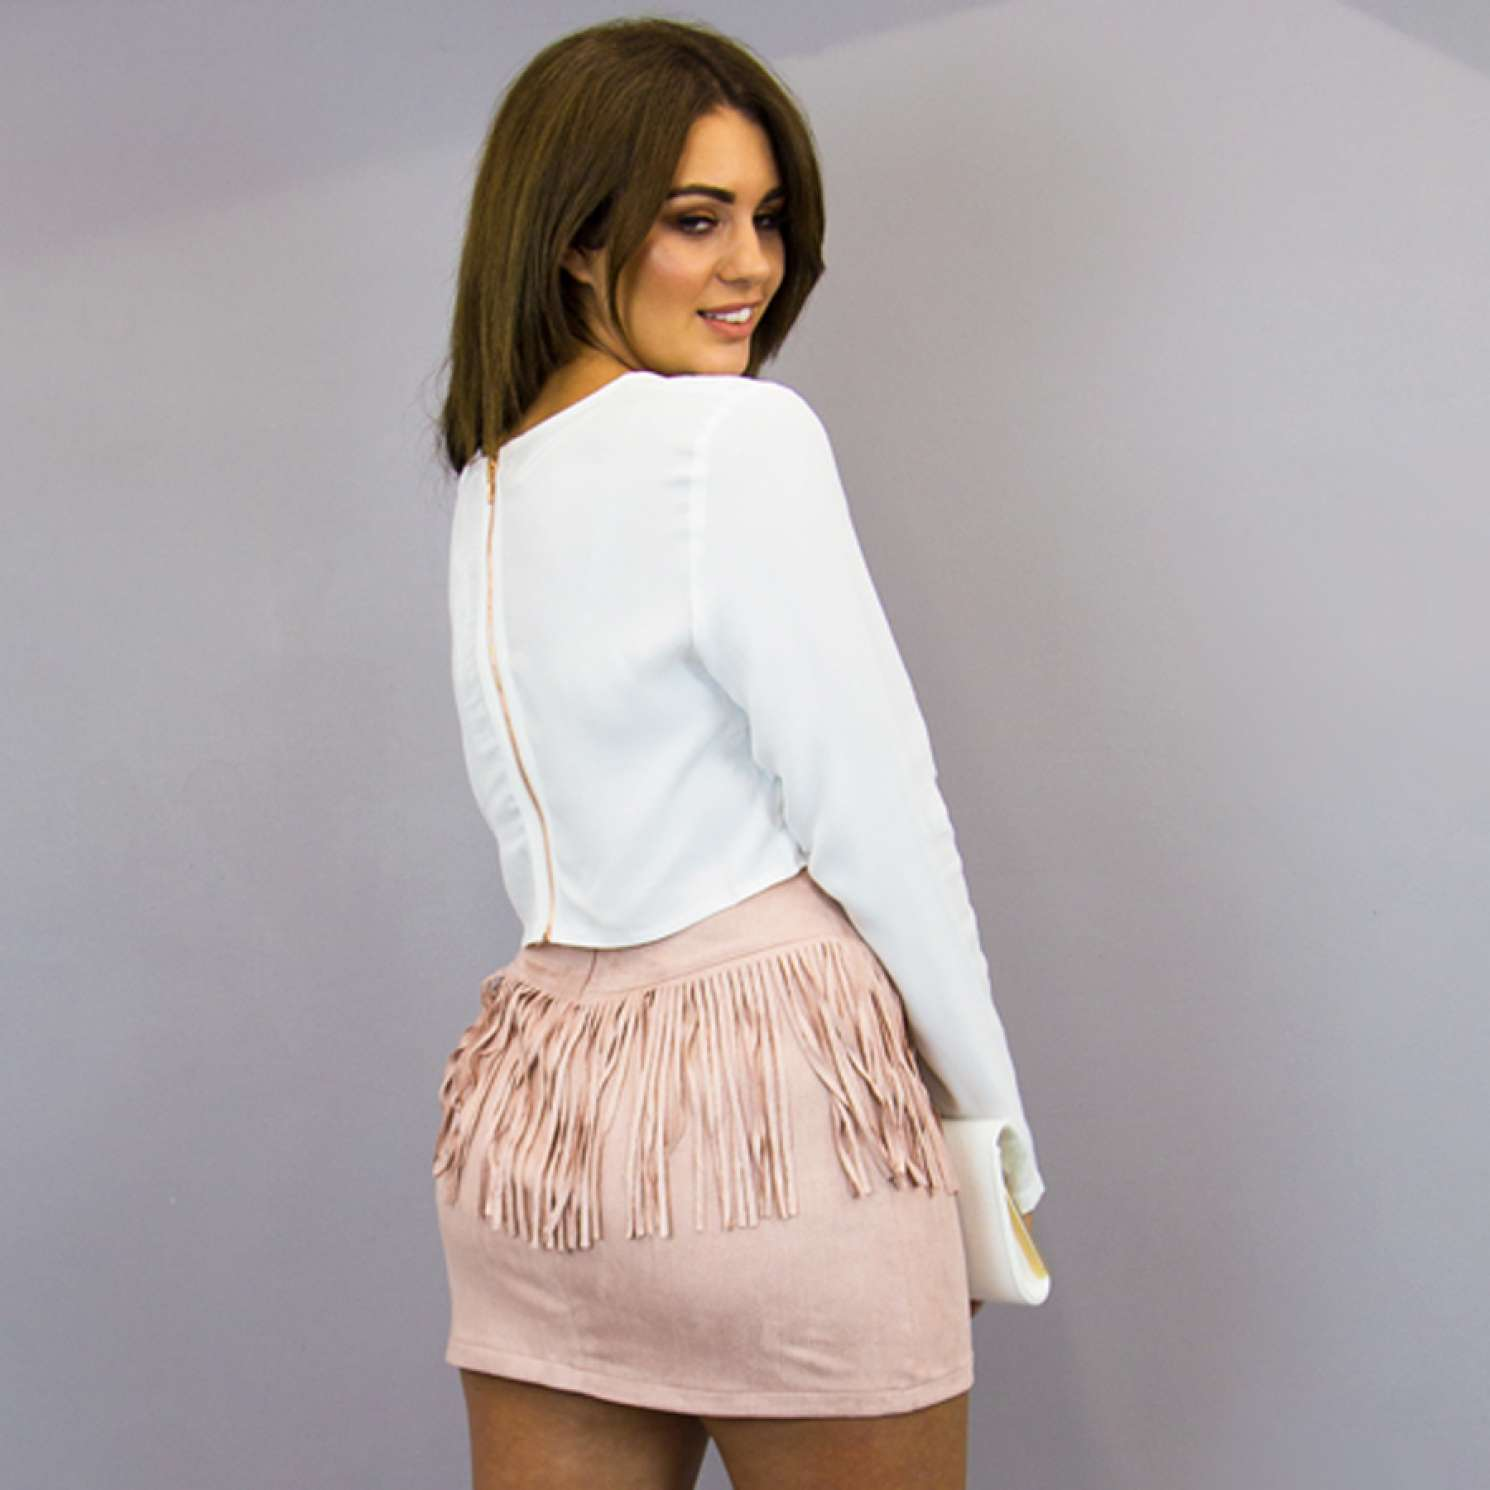 Holly Peers: fearlesss photoshoot-14   GotCeleb